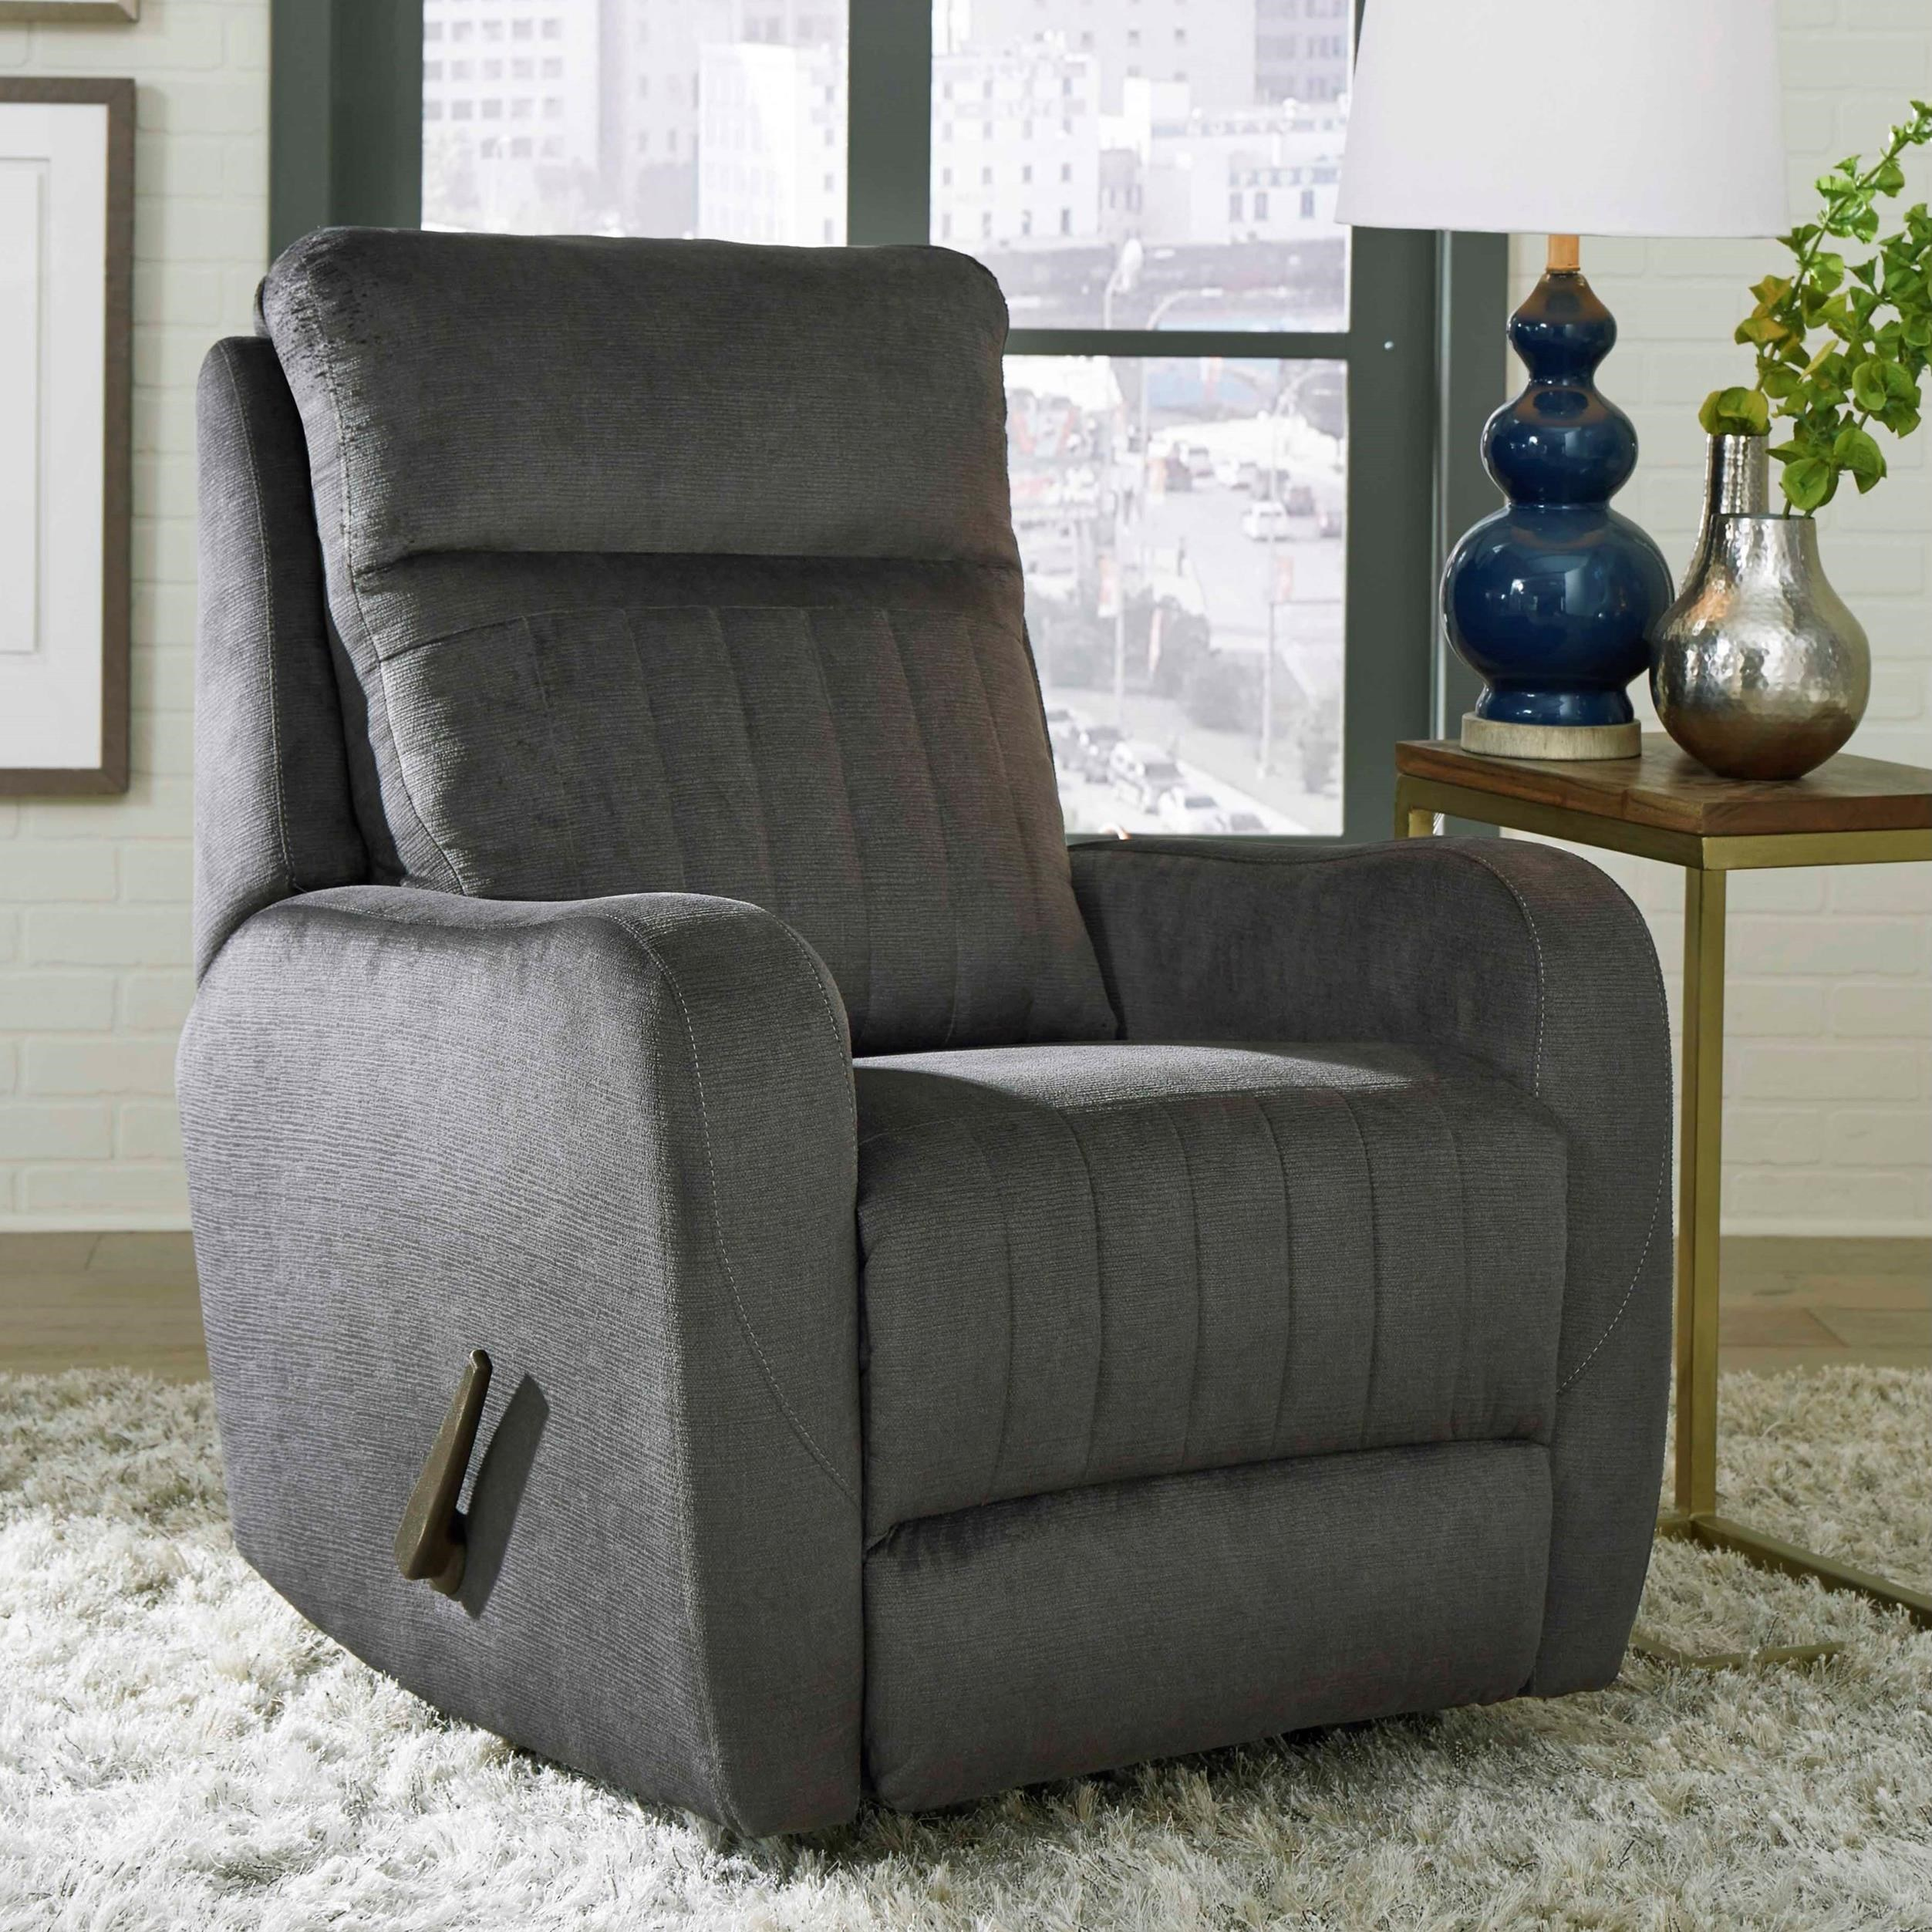 Racetrack Rocker Power Recliner by Southern Motion at Prime Brothers Furniture